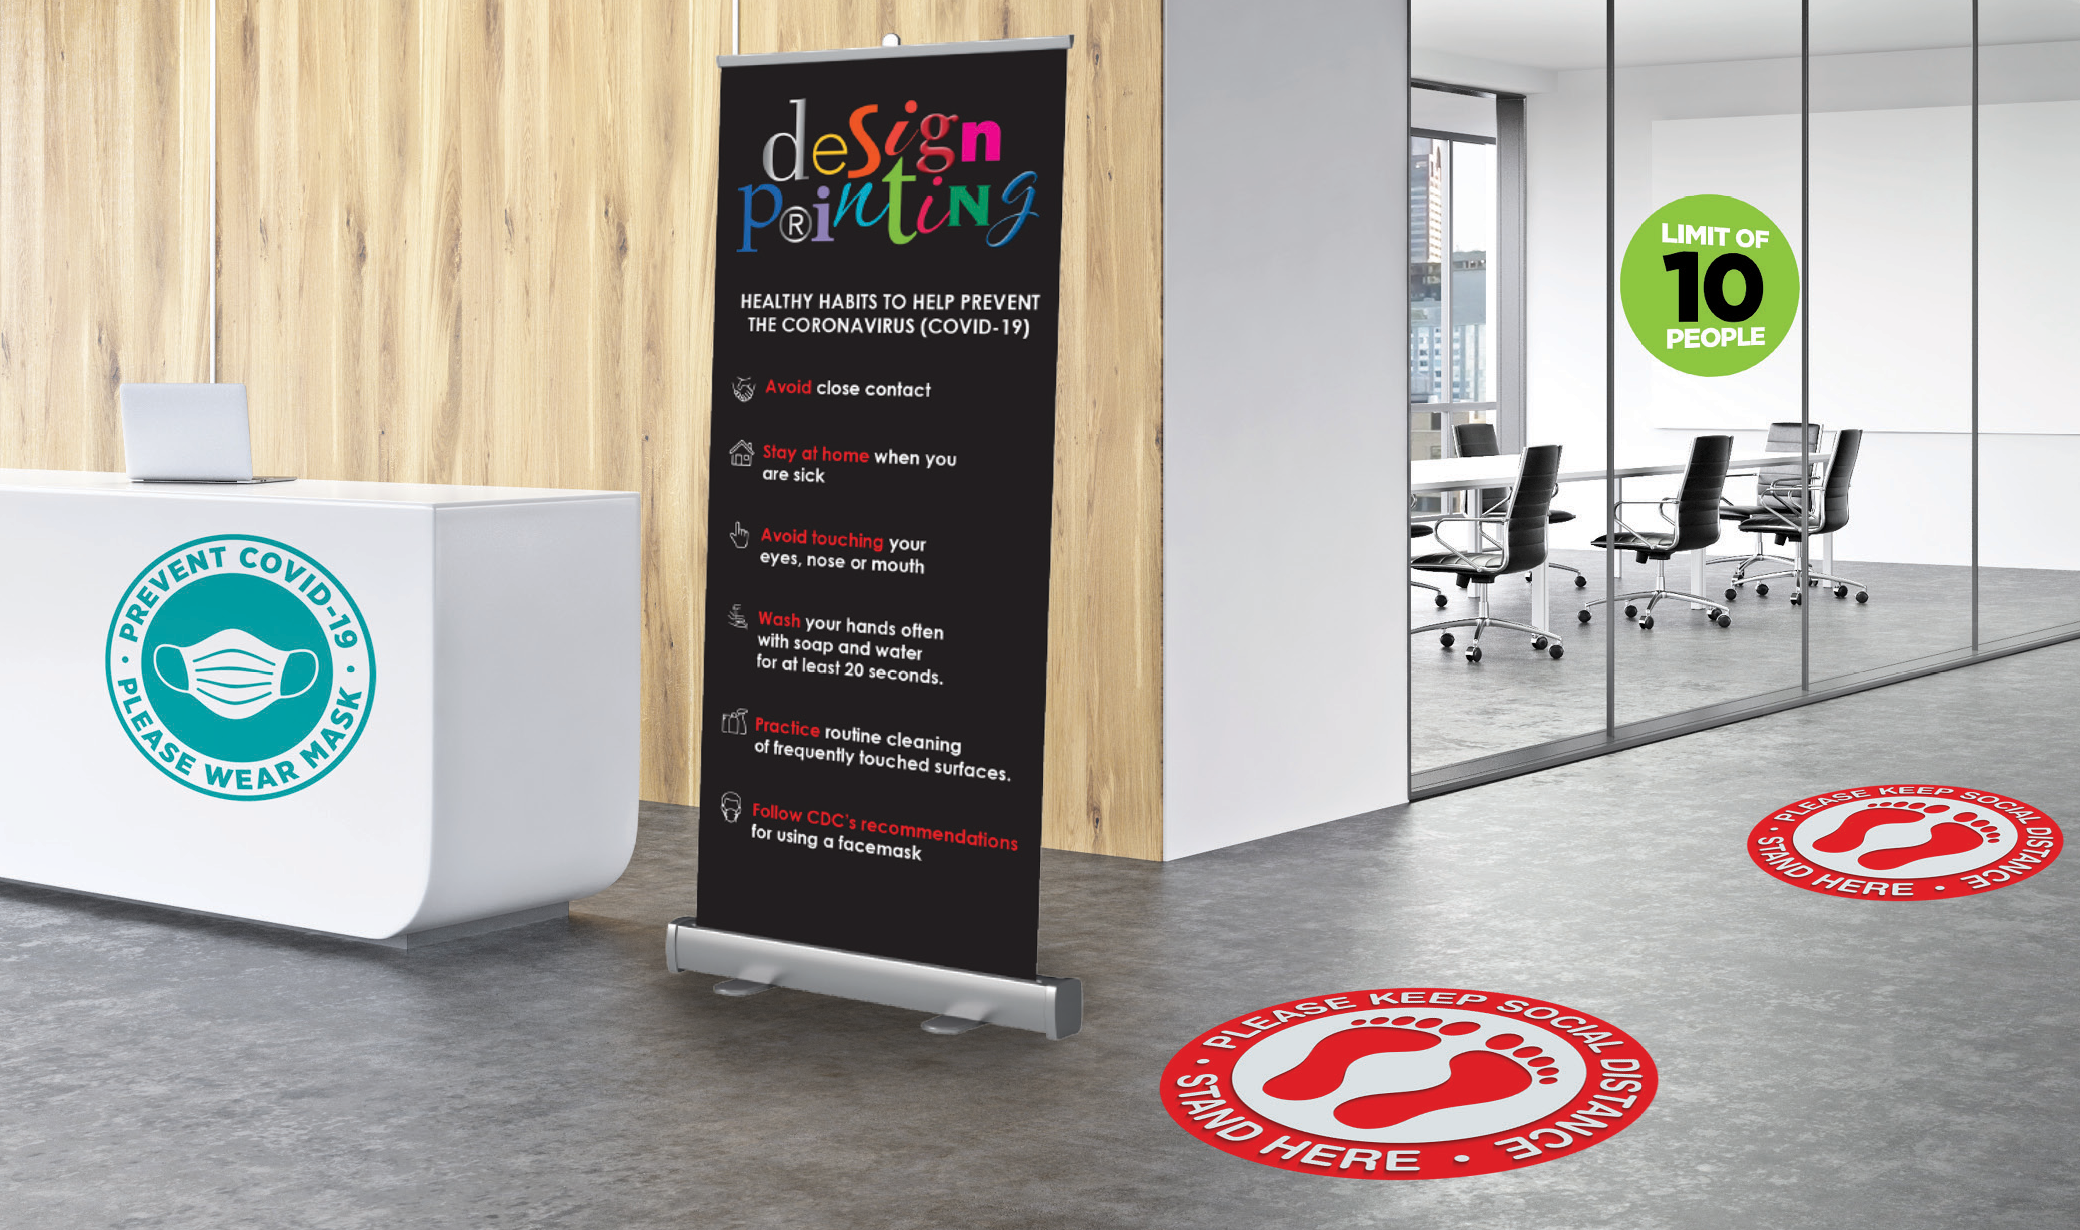 COVID-19 signage, floor decals, window clings, retractable banner